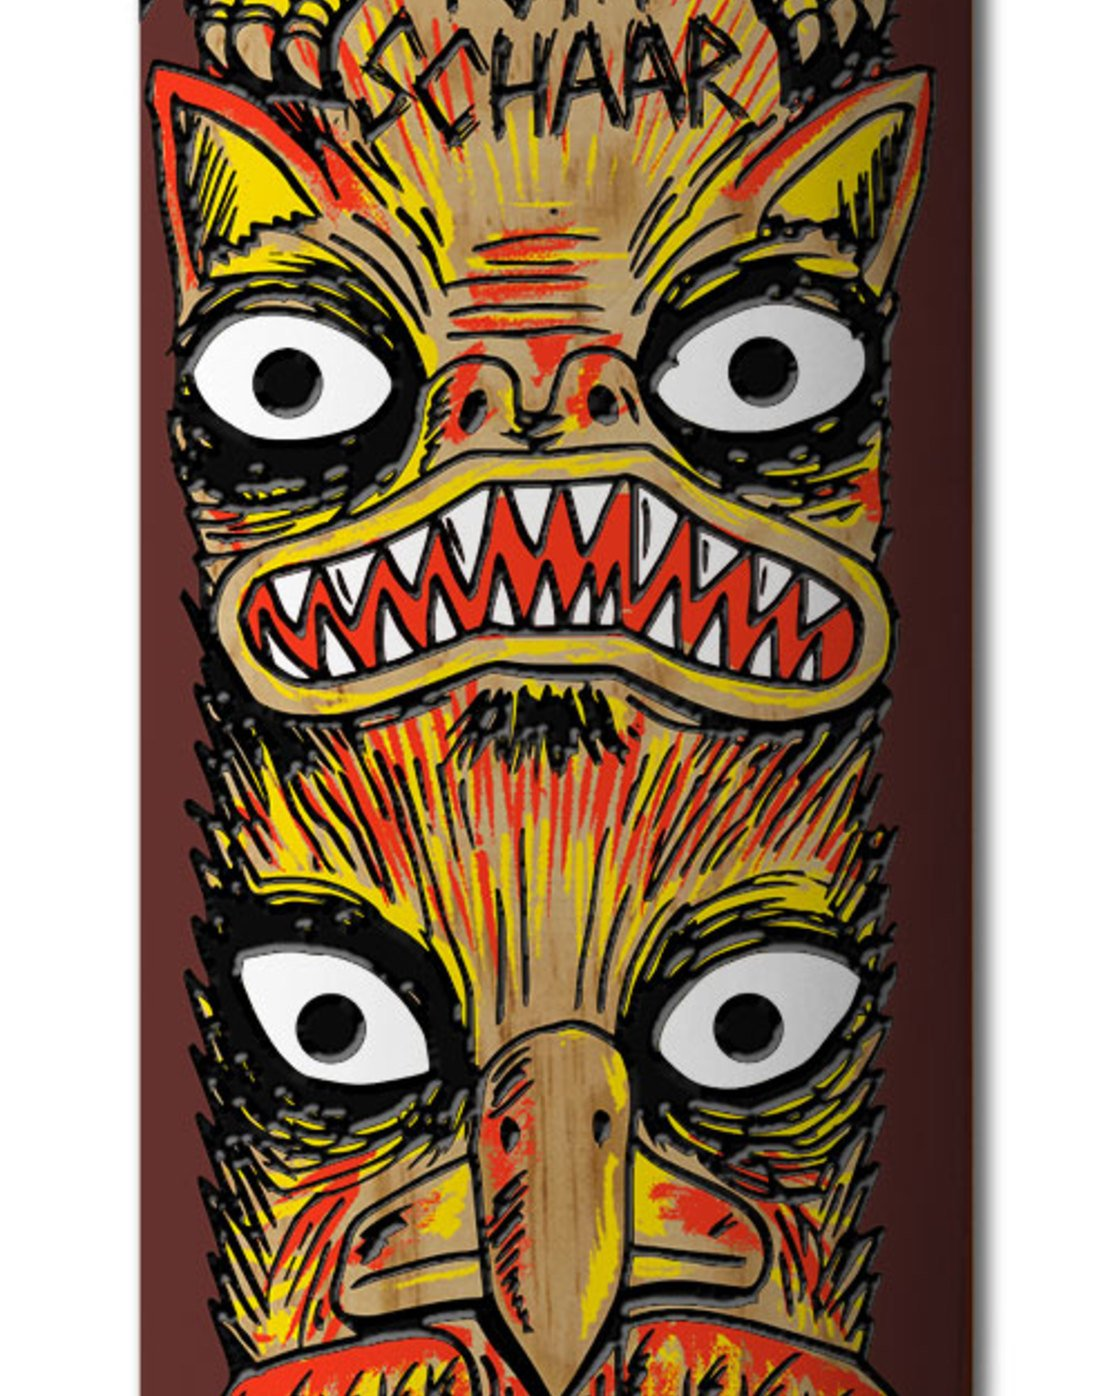 2 Fos Totem Deck - Schaar - 7.8  BDPRUFTS Element